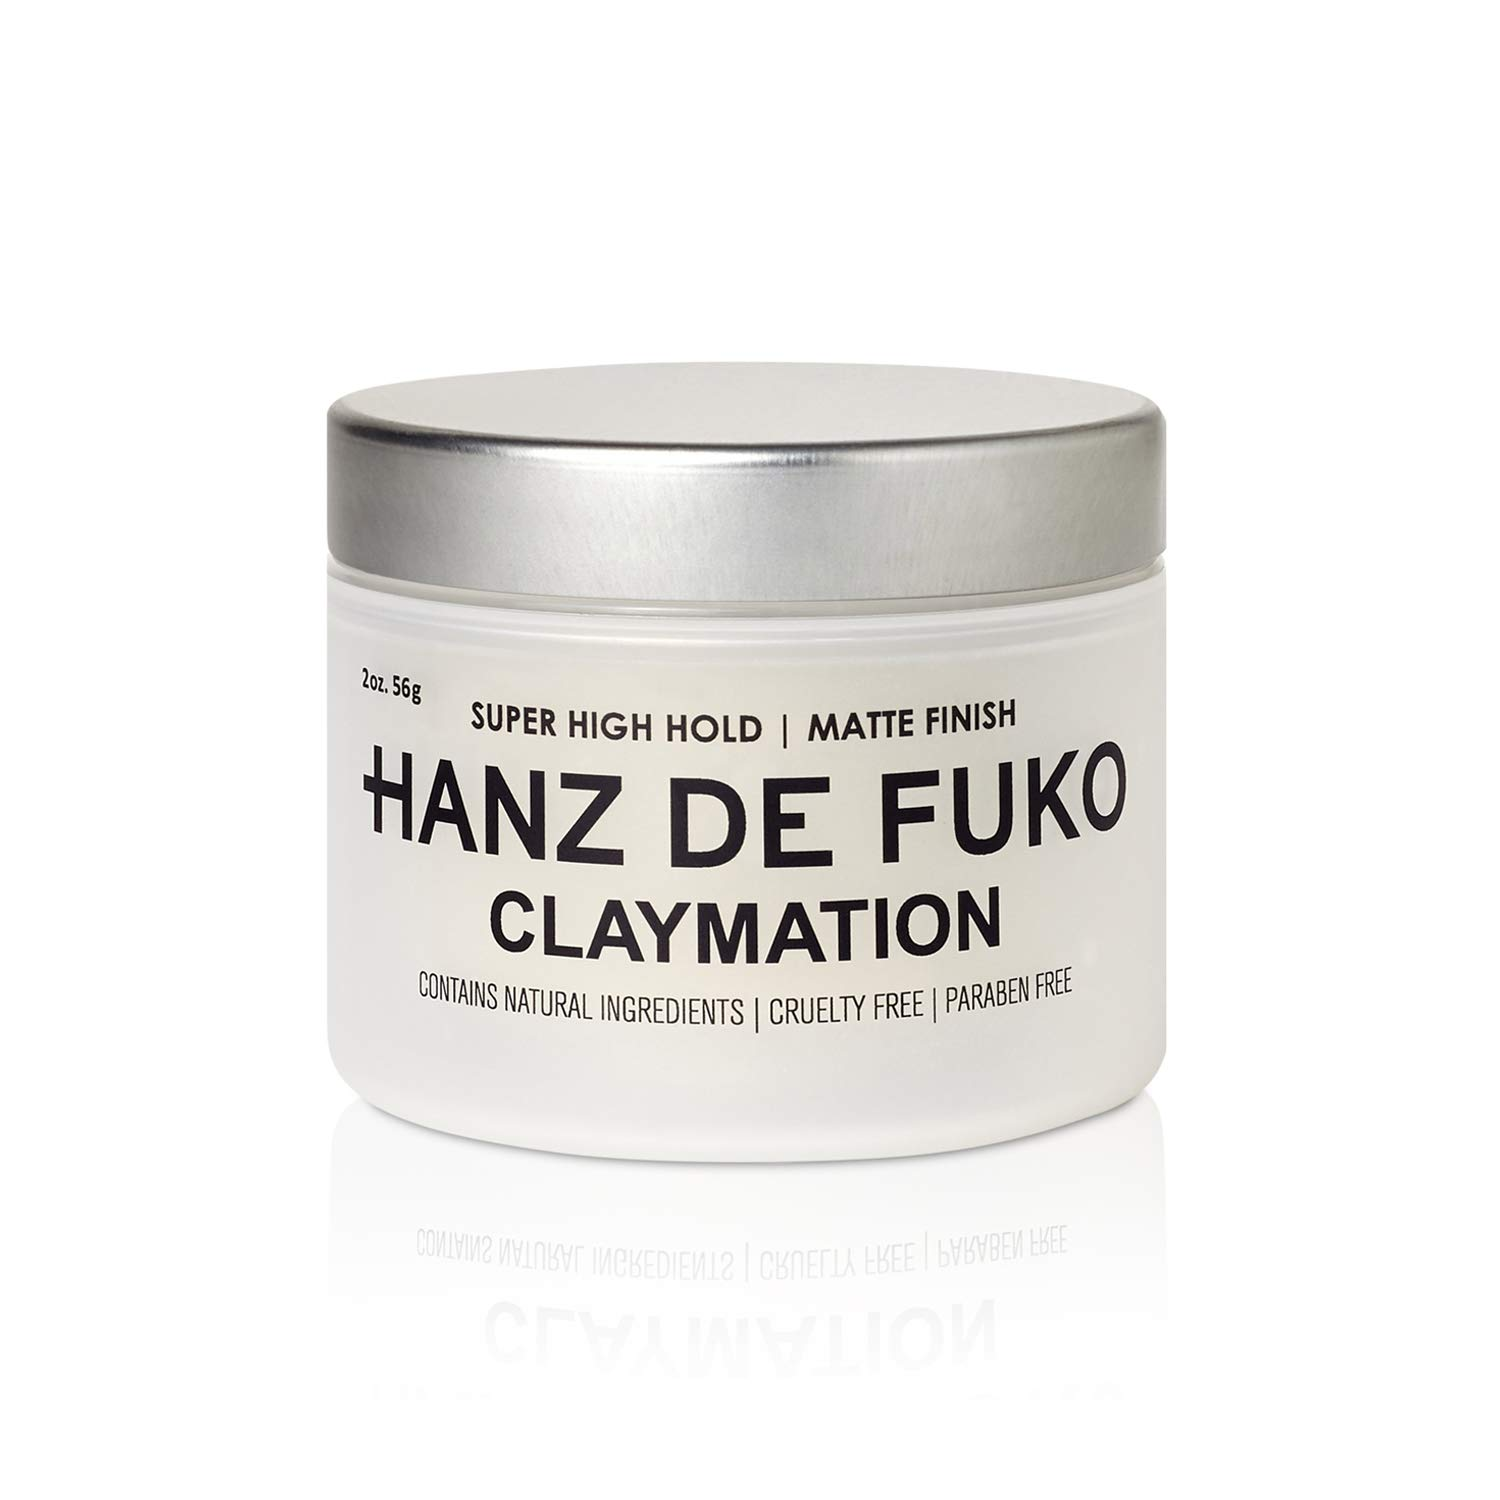 Hanz de Fuko Claymation- Premium Mens Hair Styling Clay with Matte Finish (2 oz) Cruelty Free : Beauty